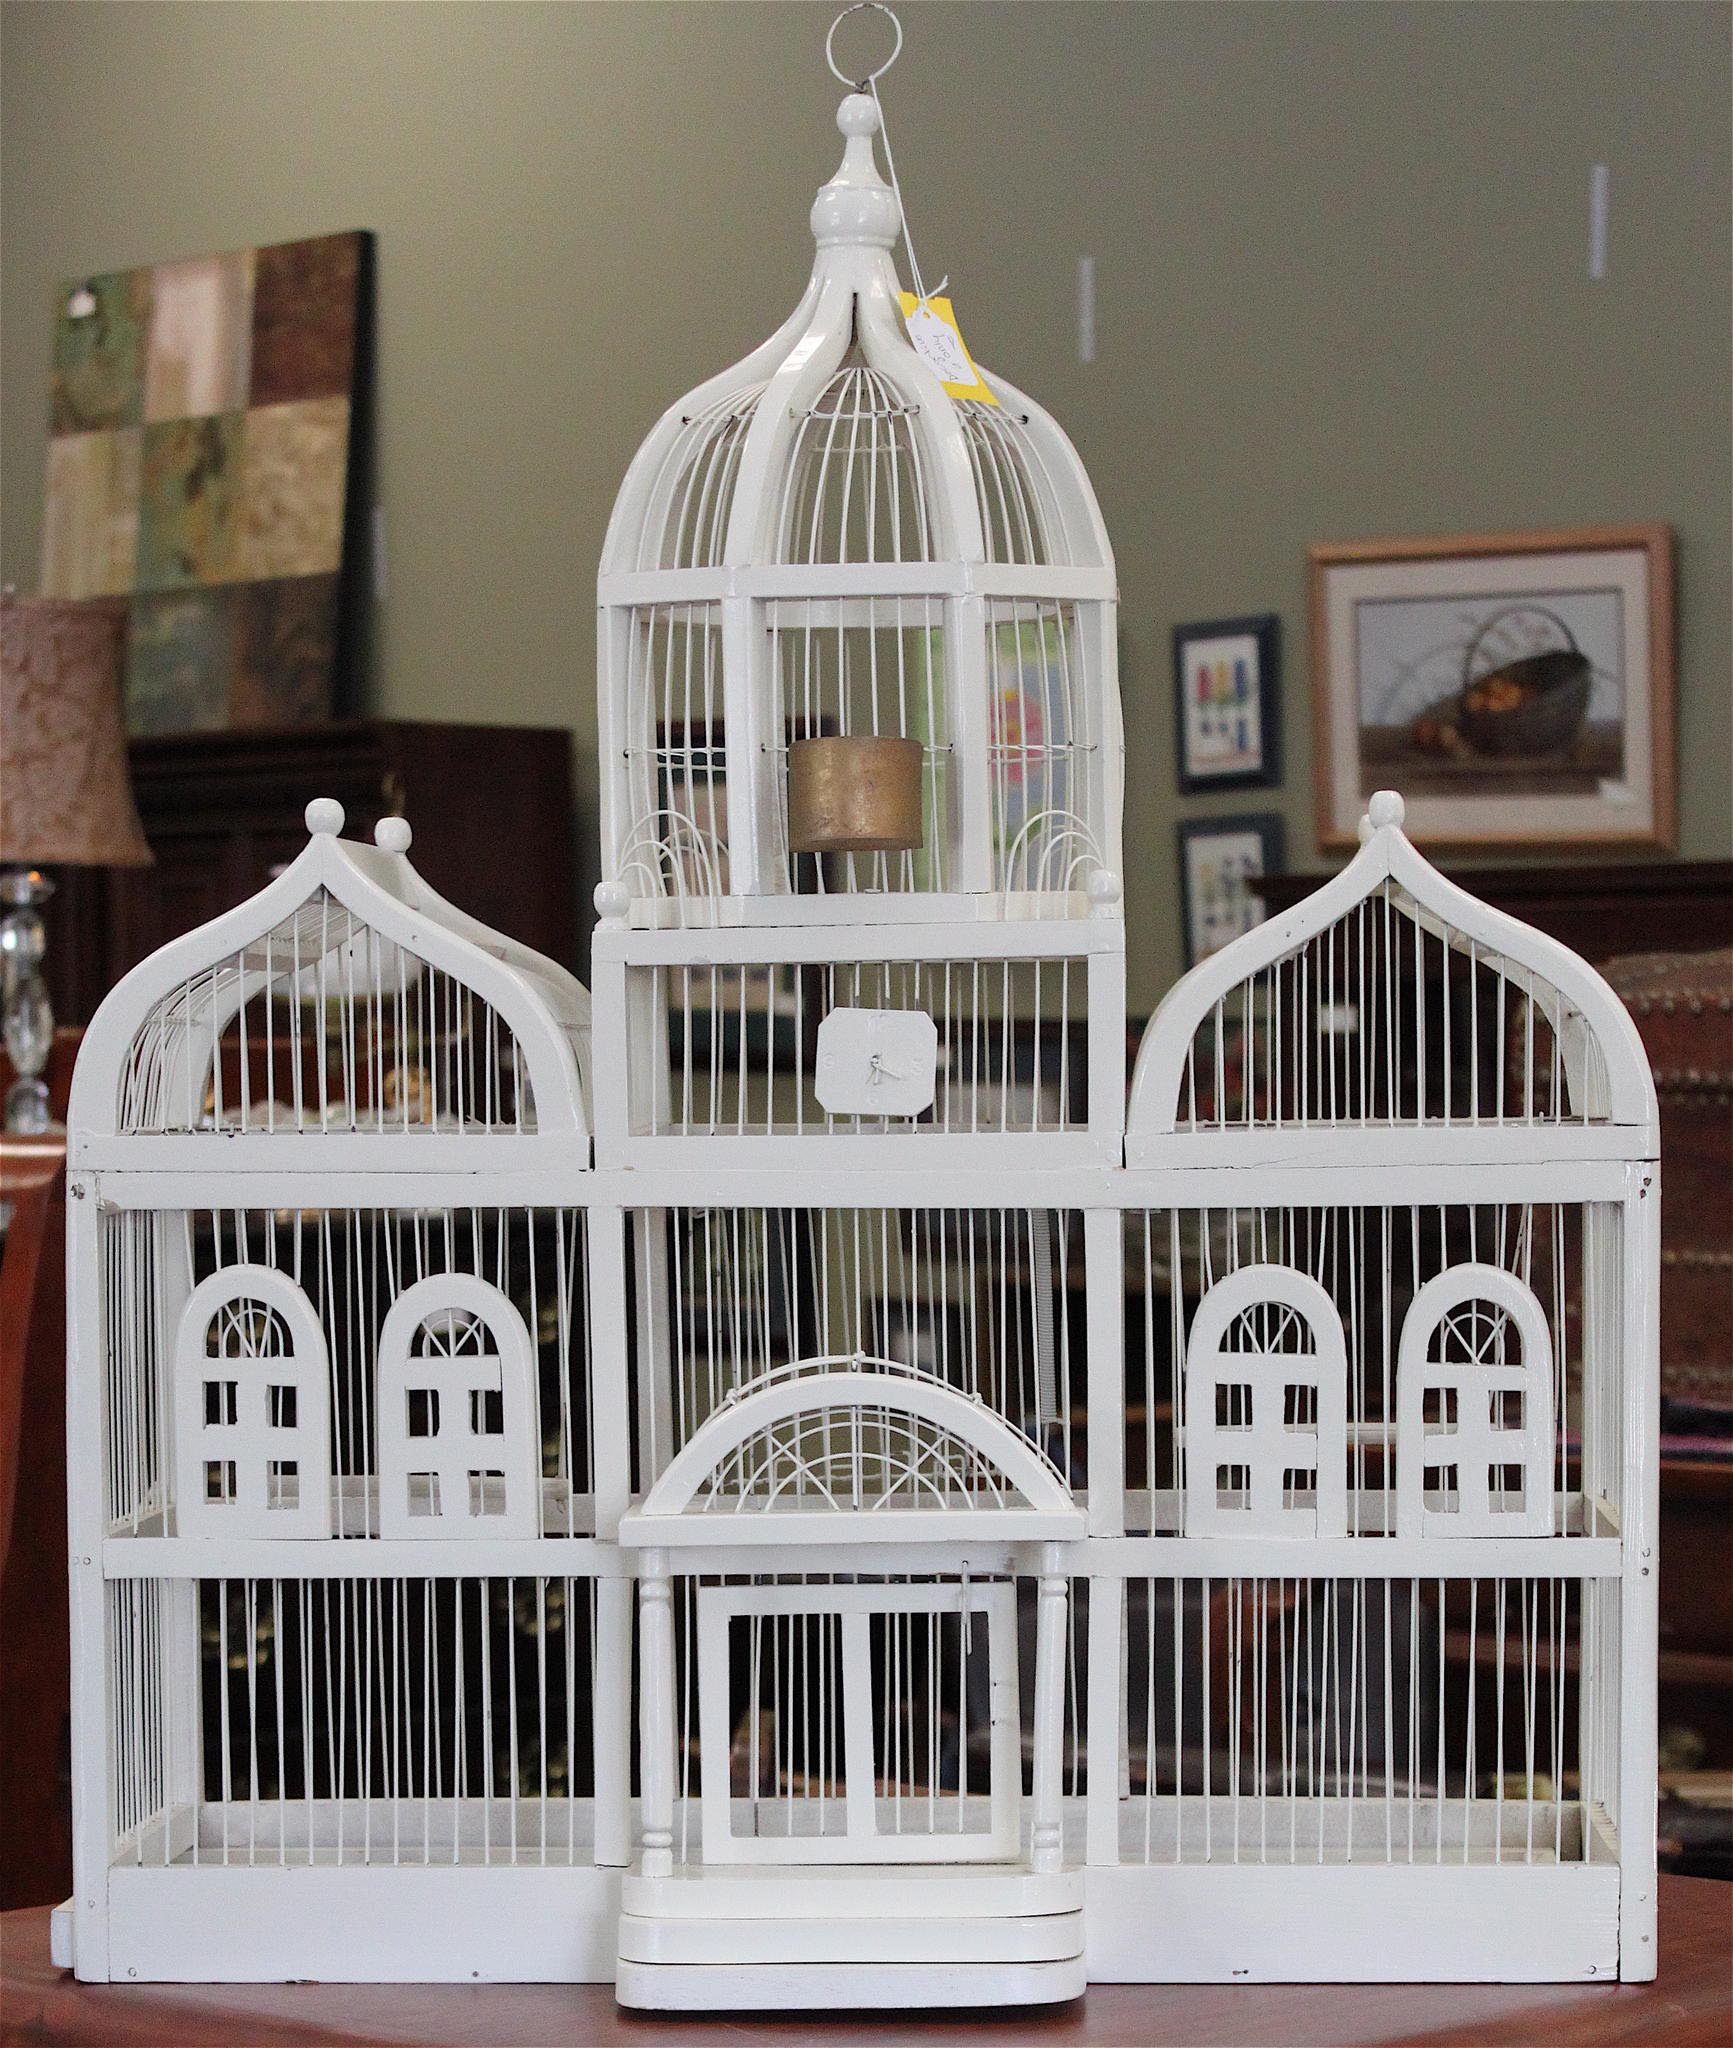 Wooden Decorative Bird Cages